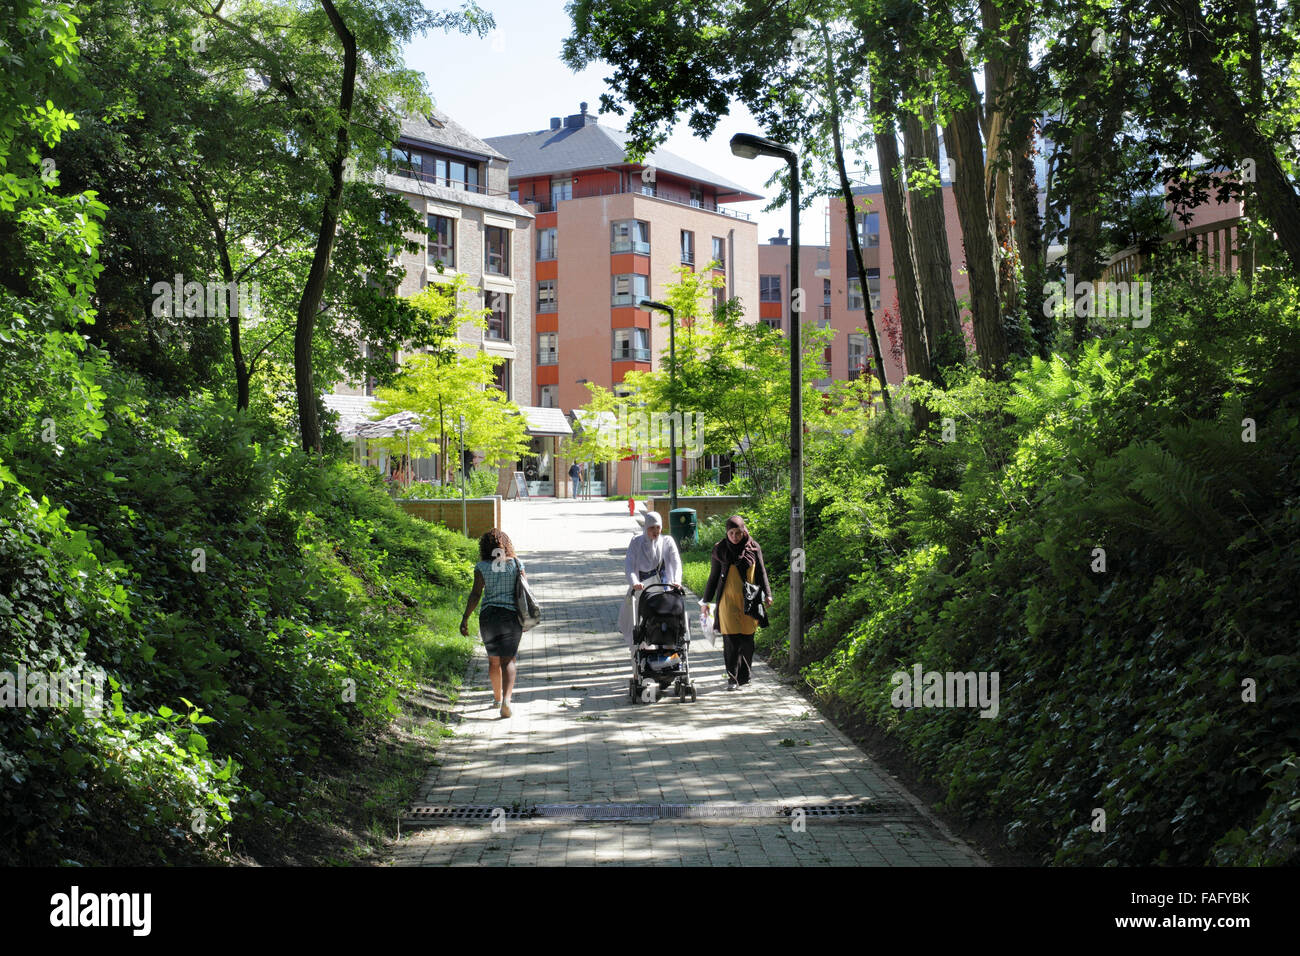 A pedestrian and cycle route into the centre of Louvain-la-Neuve, a Belgian new town with a traffic-free town centre. - Stock Image